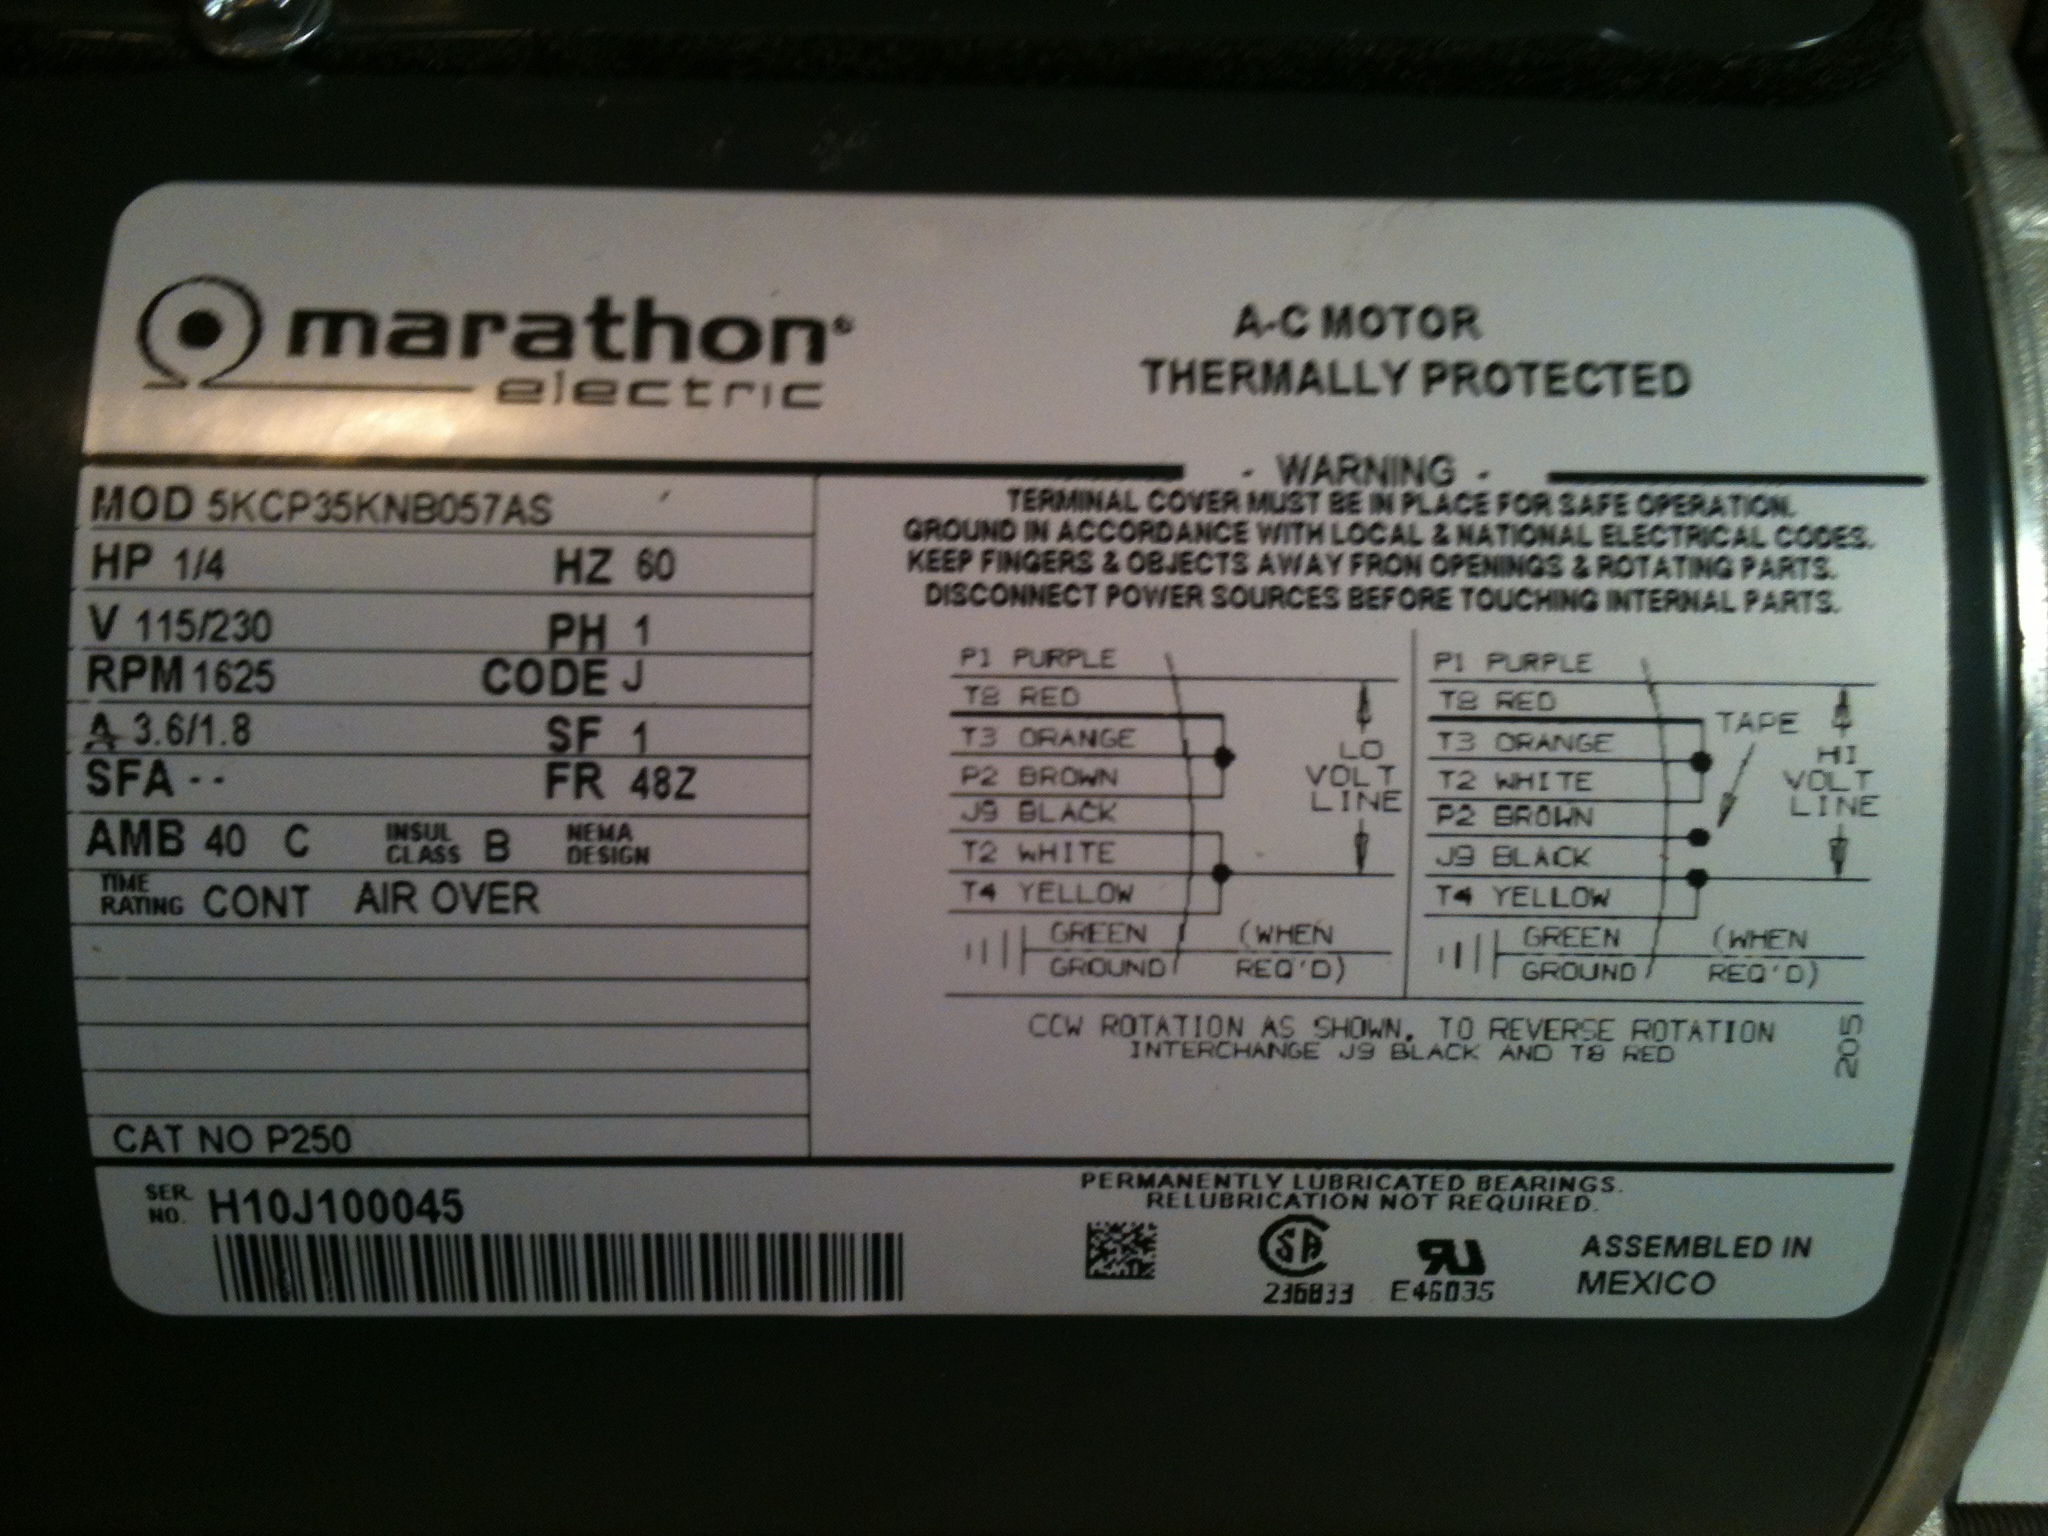 2012 01 24_021217_marathonmotor i just bought a marathon electric ac motor, hp 1 4 v 115 230 electric motor 220 to 110 volt wiring diagram at alyssarenee.co